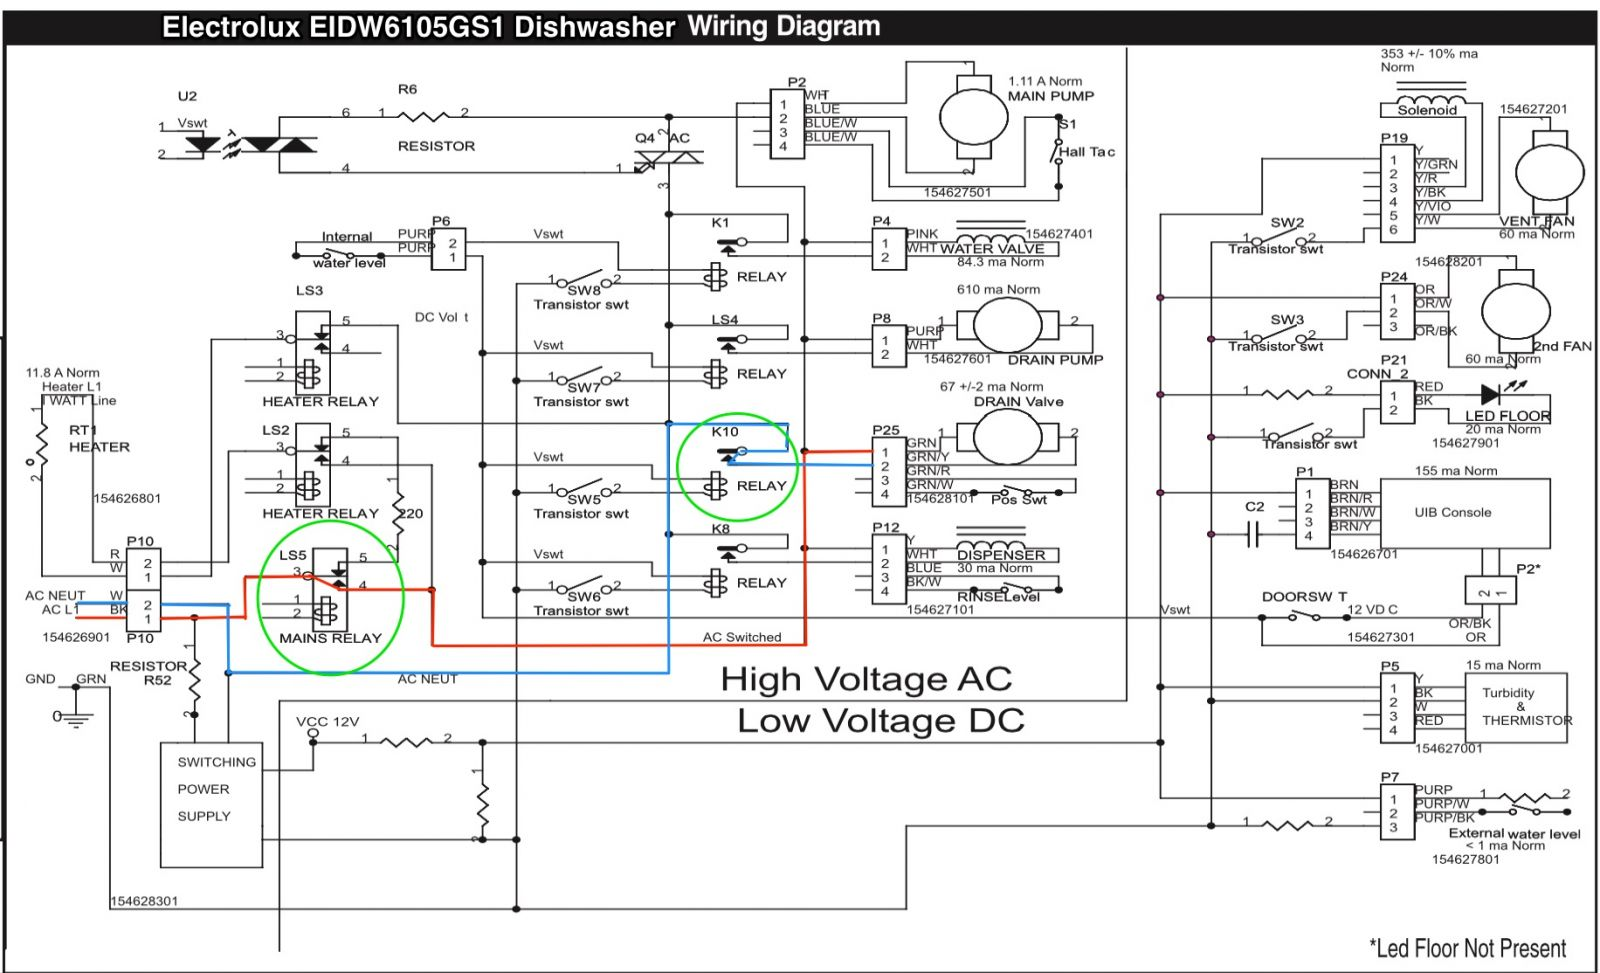 gallery_4_7_21756 electrolux eidw6105gs1 dishwasher wiring diagram the dishwasher wiring diagram at gsmx.co